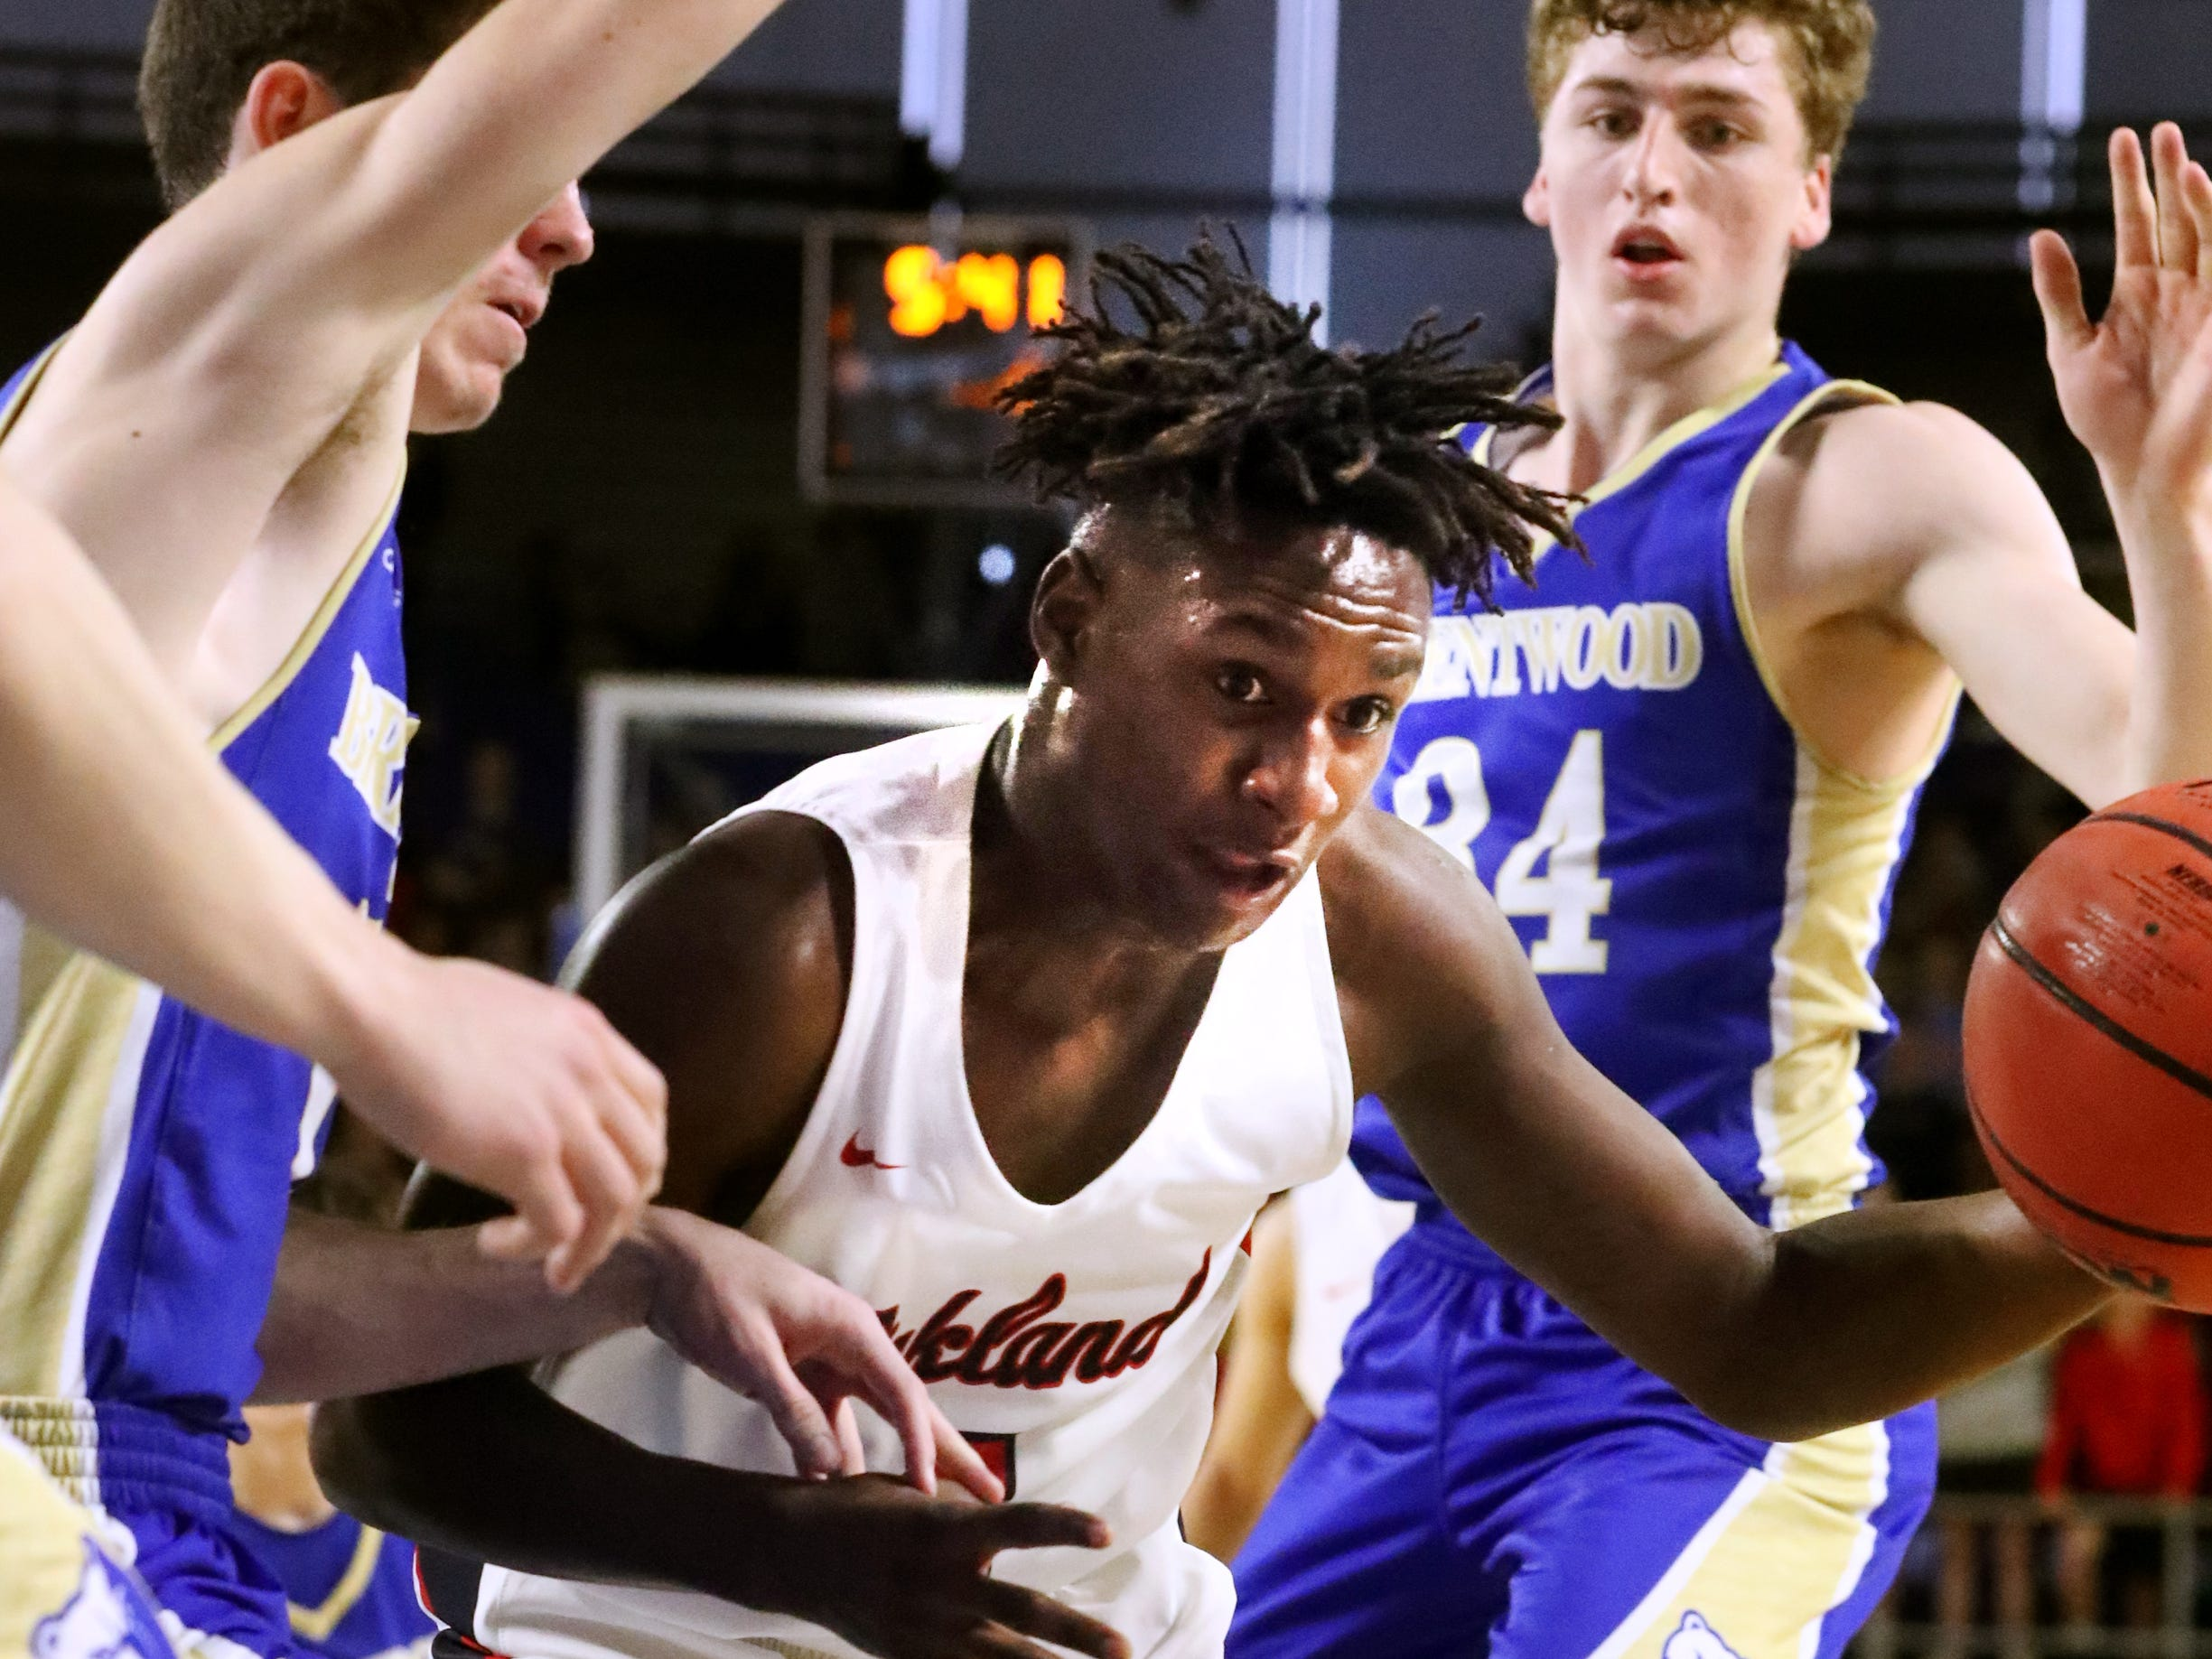 Oakland's Mandrell Grant (4) drives to the basket during the quarterfinal round of the TSSAA Class AAA Boys State Tournament against Brentwood, on Thursday, March 14, 2019, at Murphy Center in Murfreesboro, Tenn.